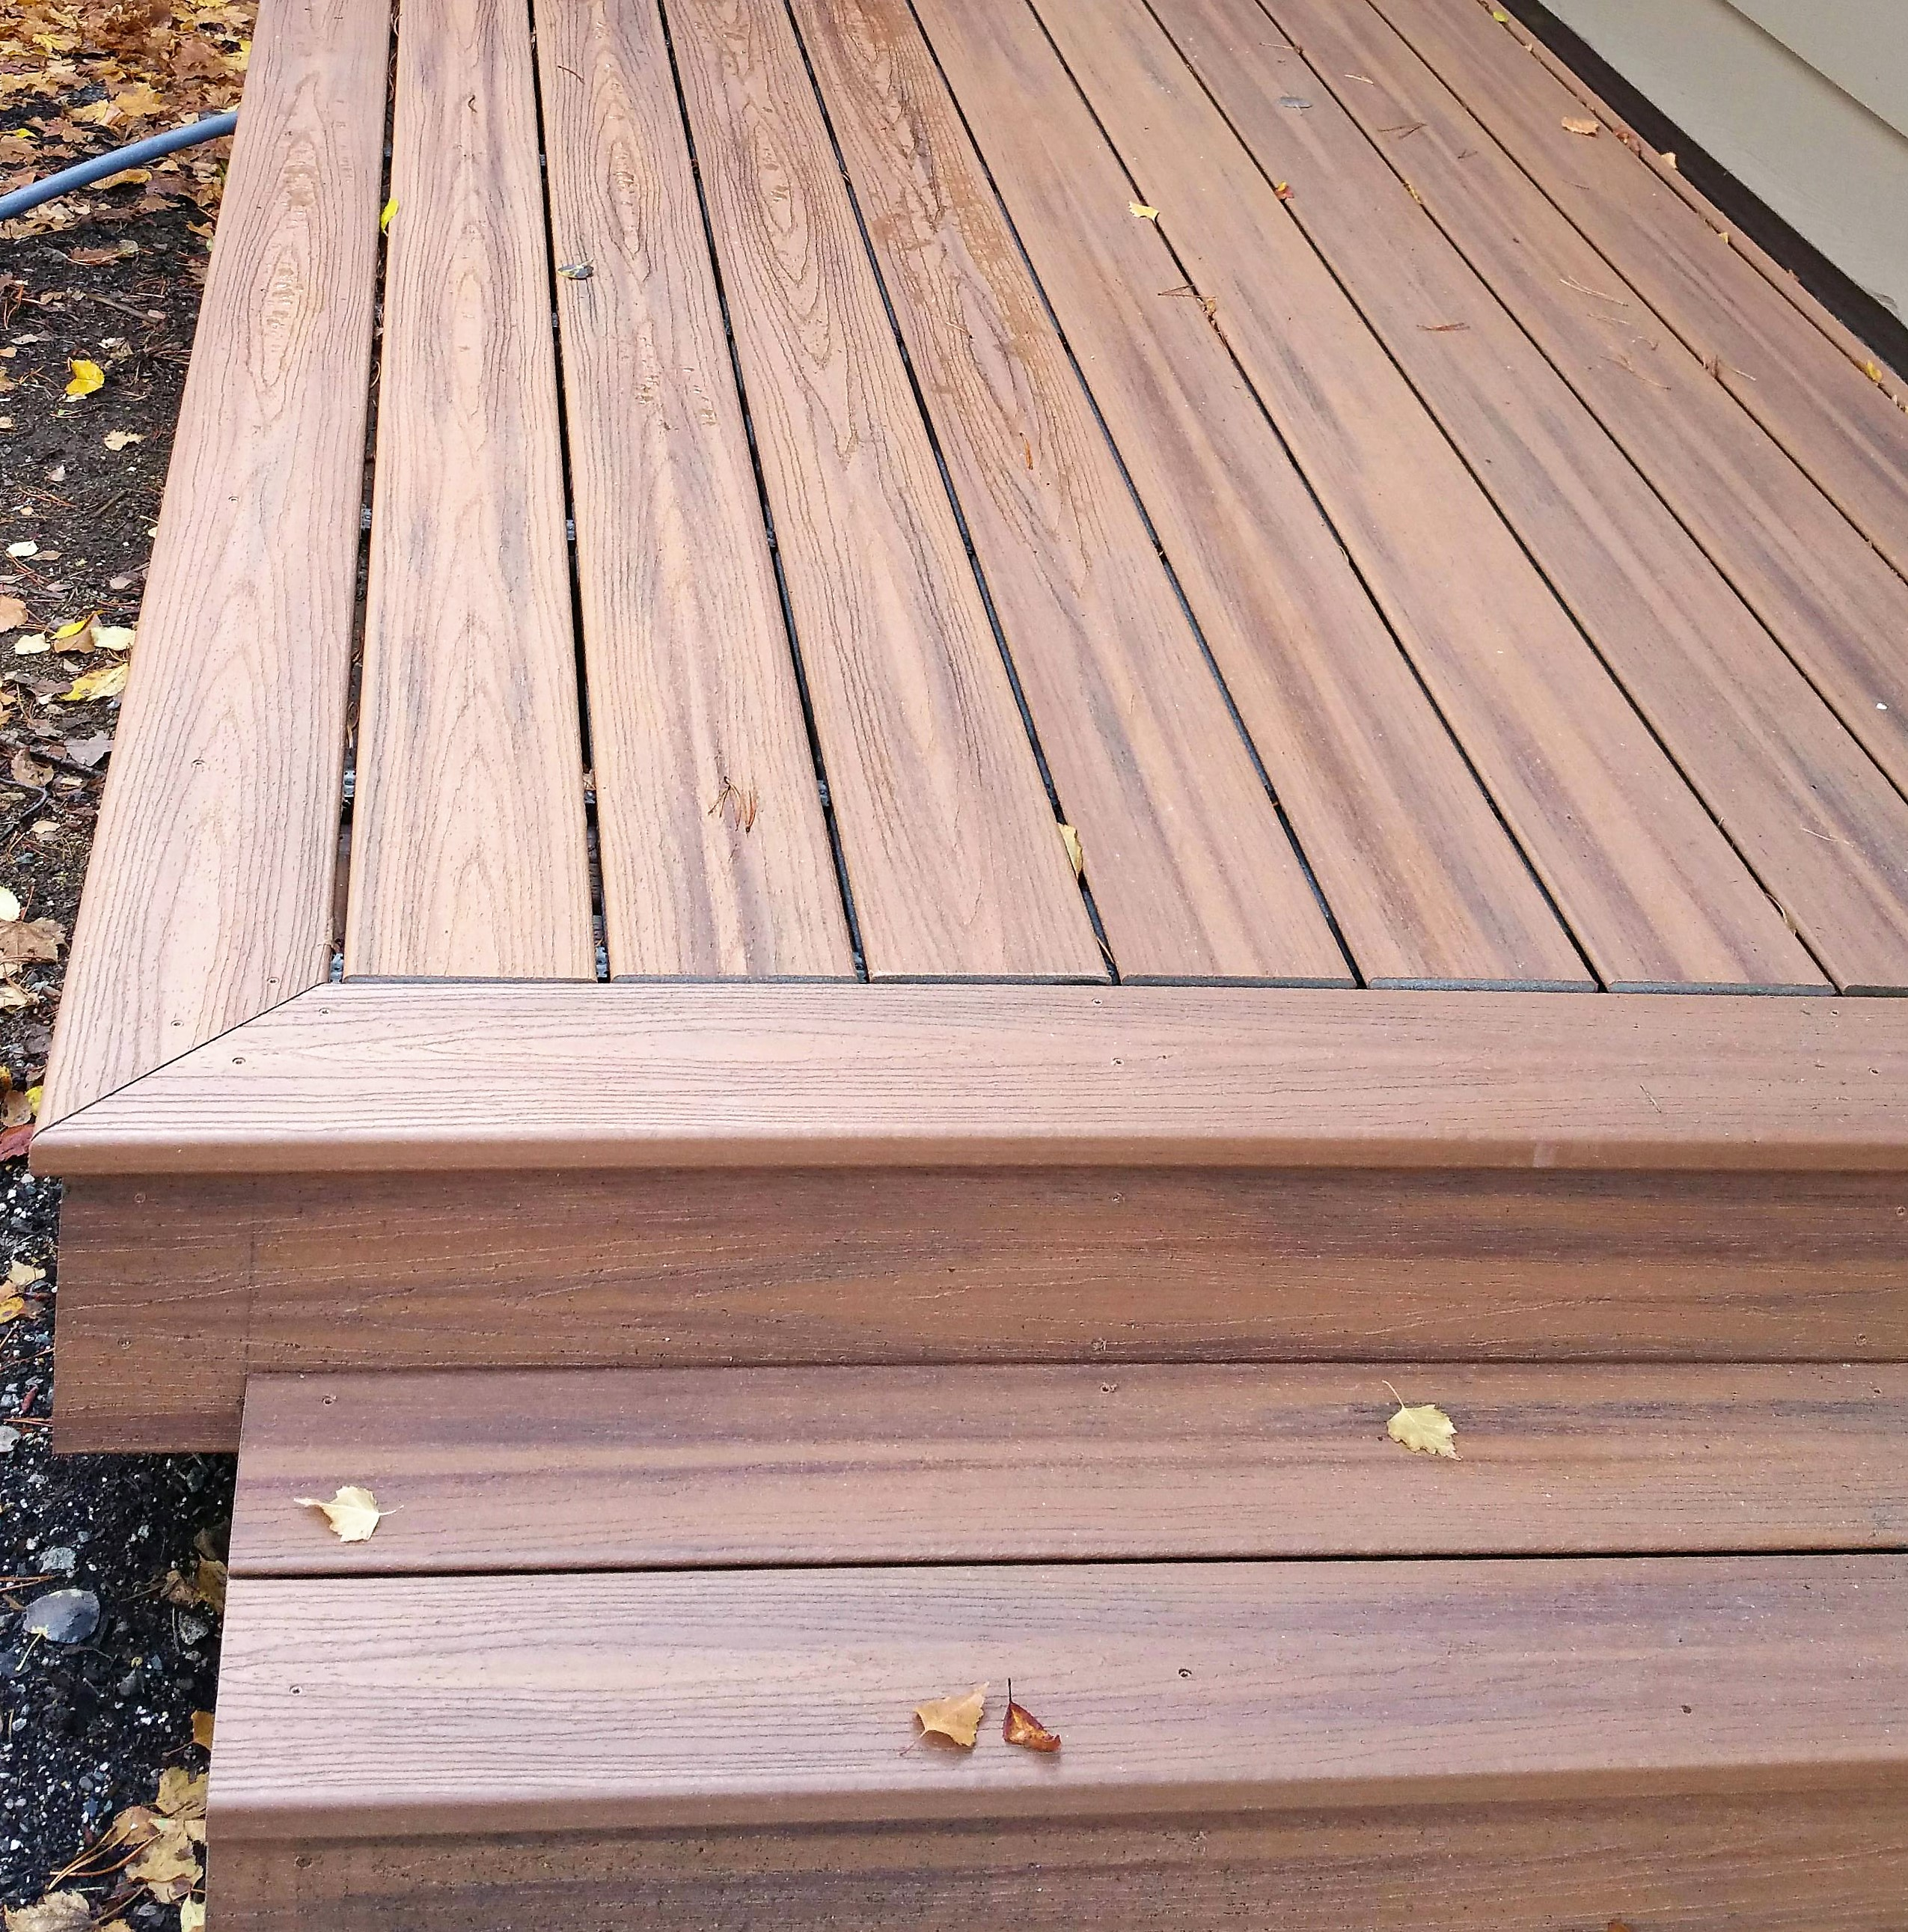 Why Do We Love Trex Composite Decking?